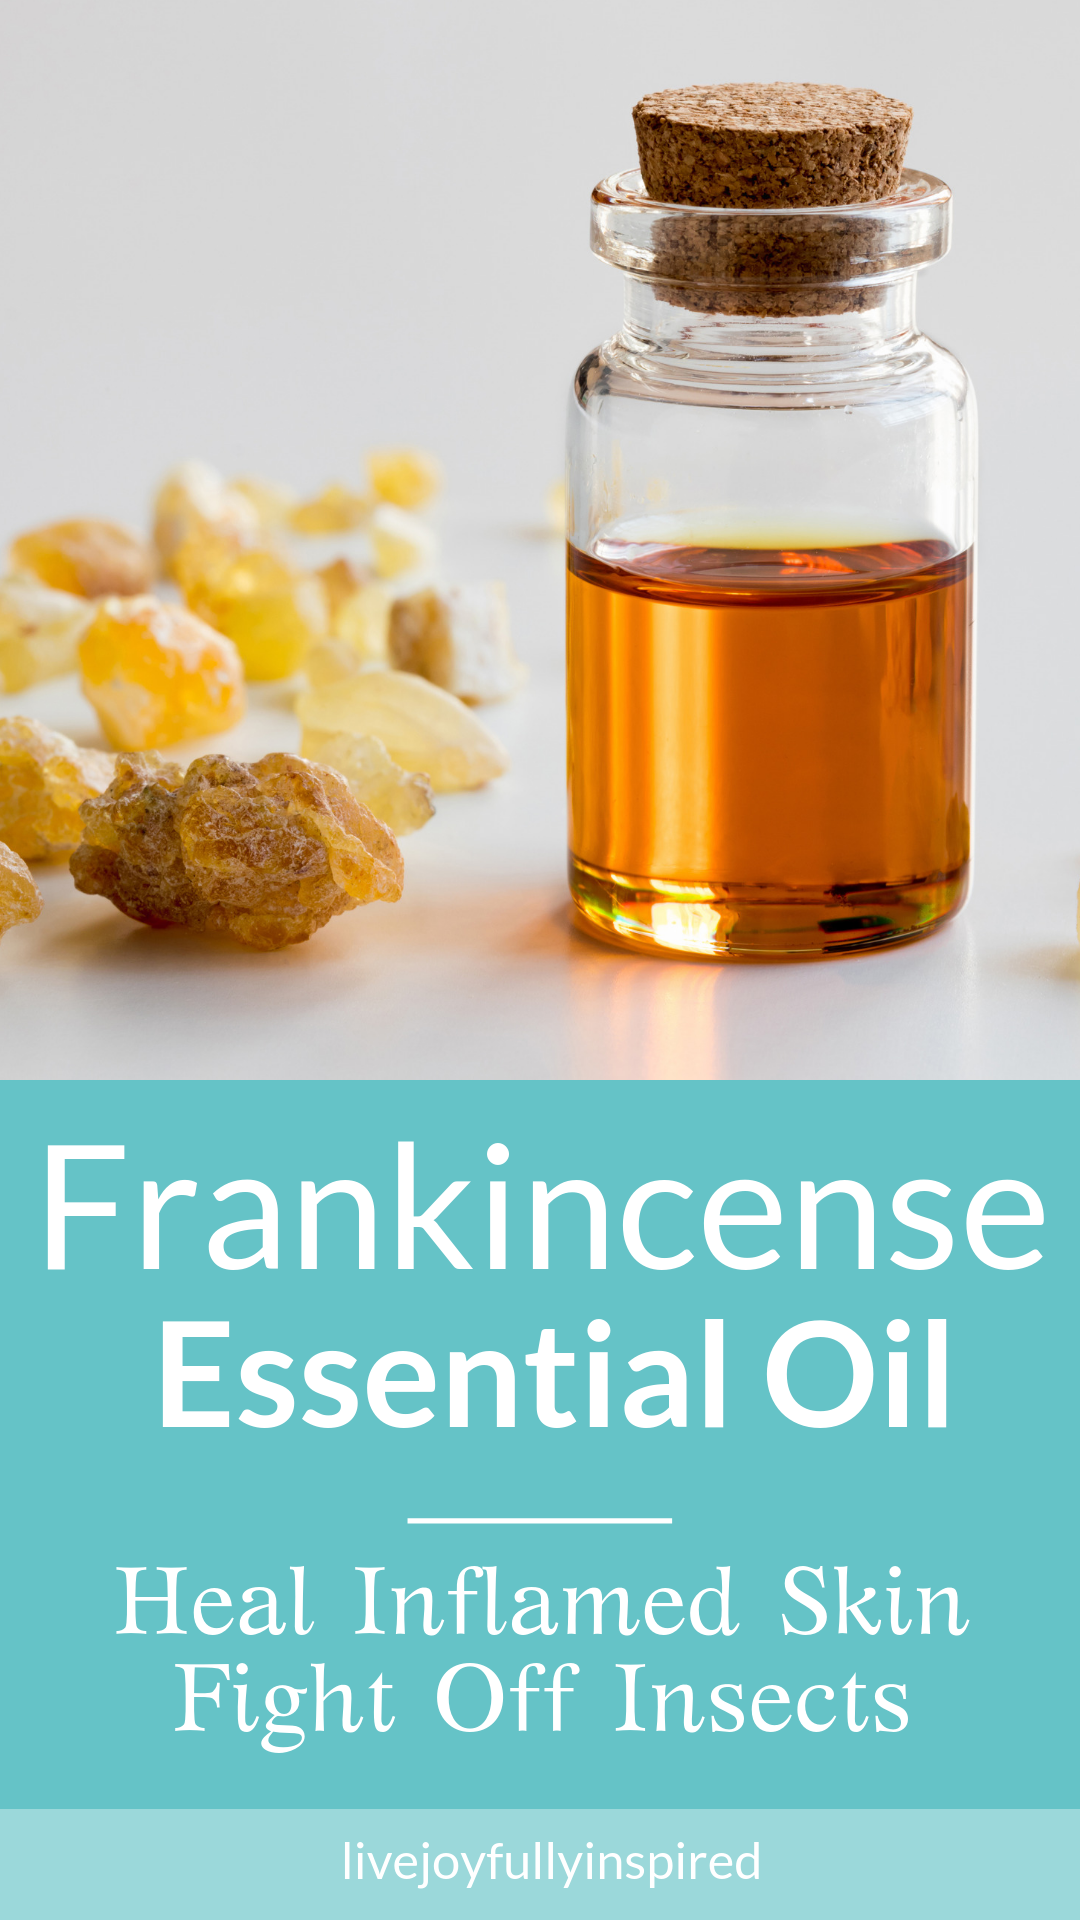 This ancient oil provides healing benefits to the skin and the body. It has been used medicinally for centuries. Frankincense essential oil is among the most used essential oils for the skin. The healing properties are numerous. #frankincenseessentialoil #healskin #agingskin